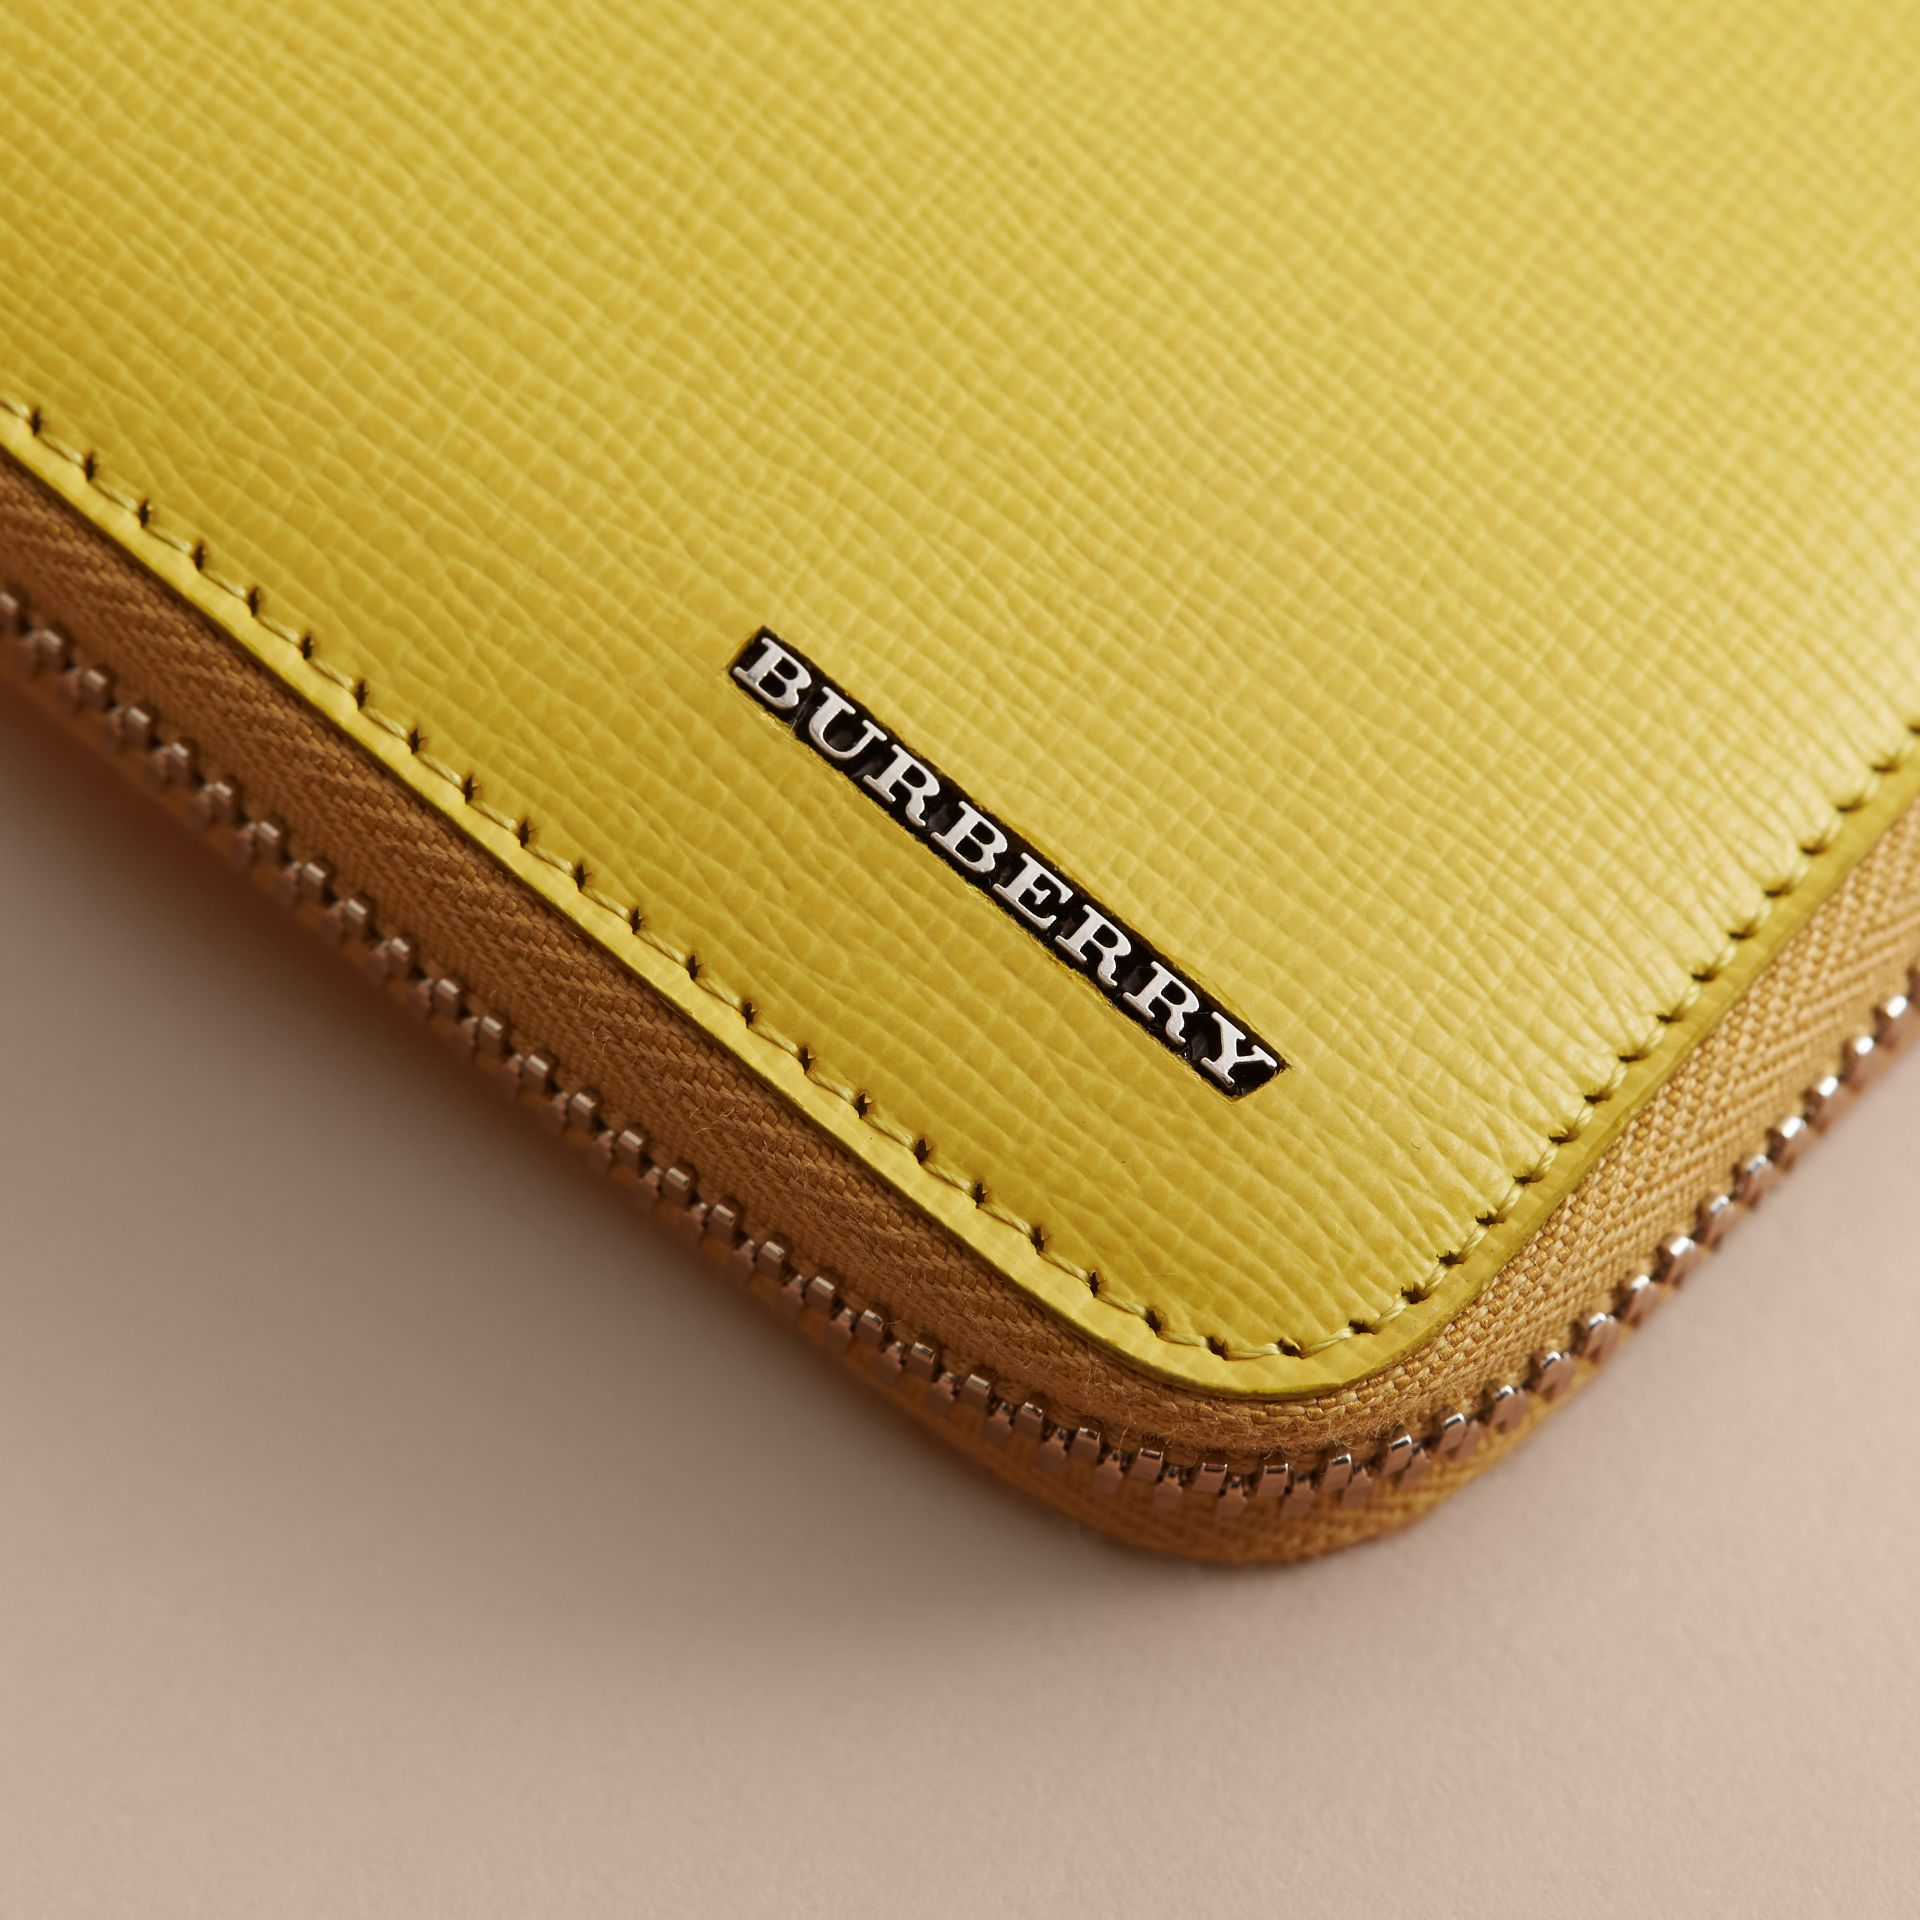 London Leather Ziparound Wallet in Bright Citrus | Burberry - gallery image 2